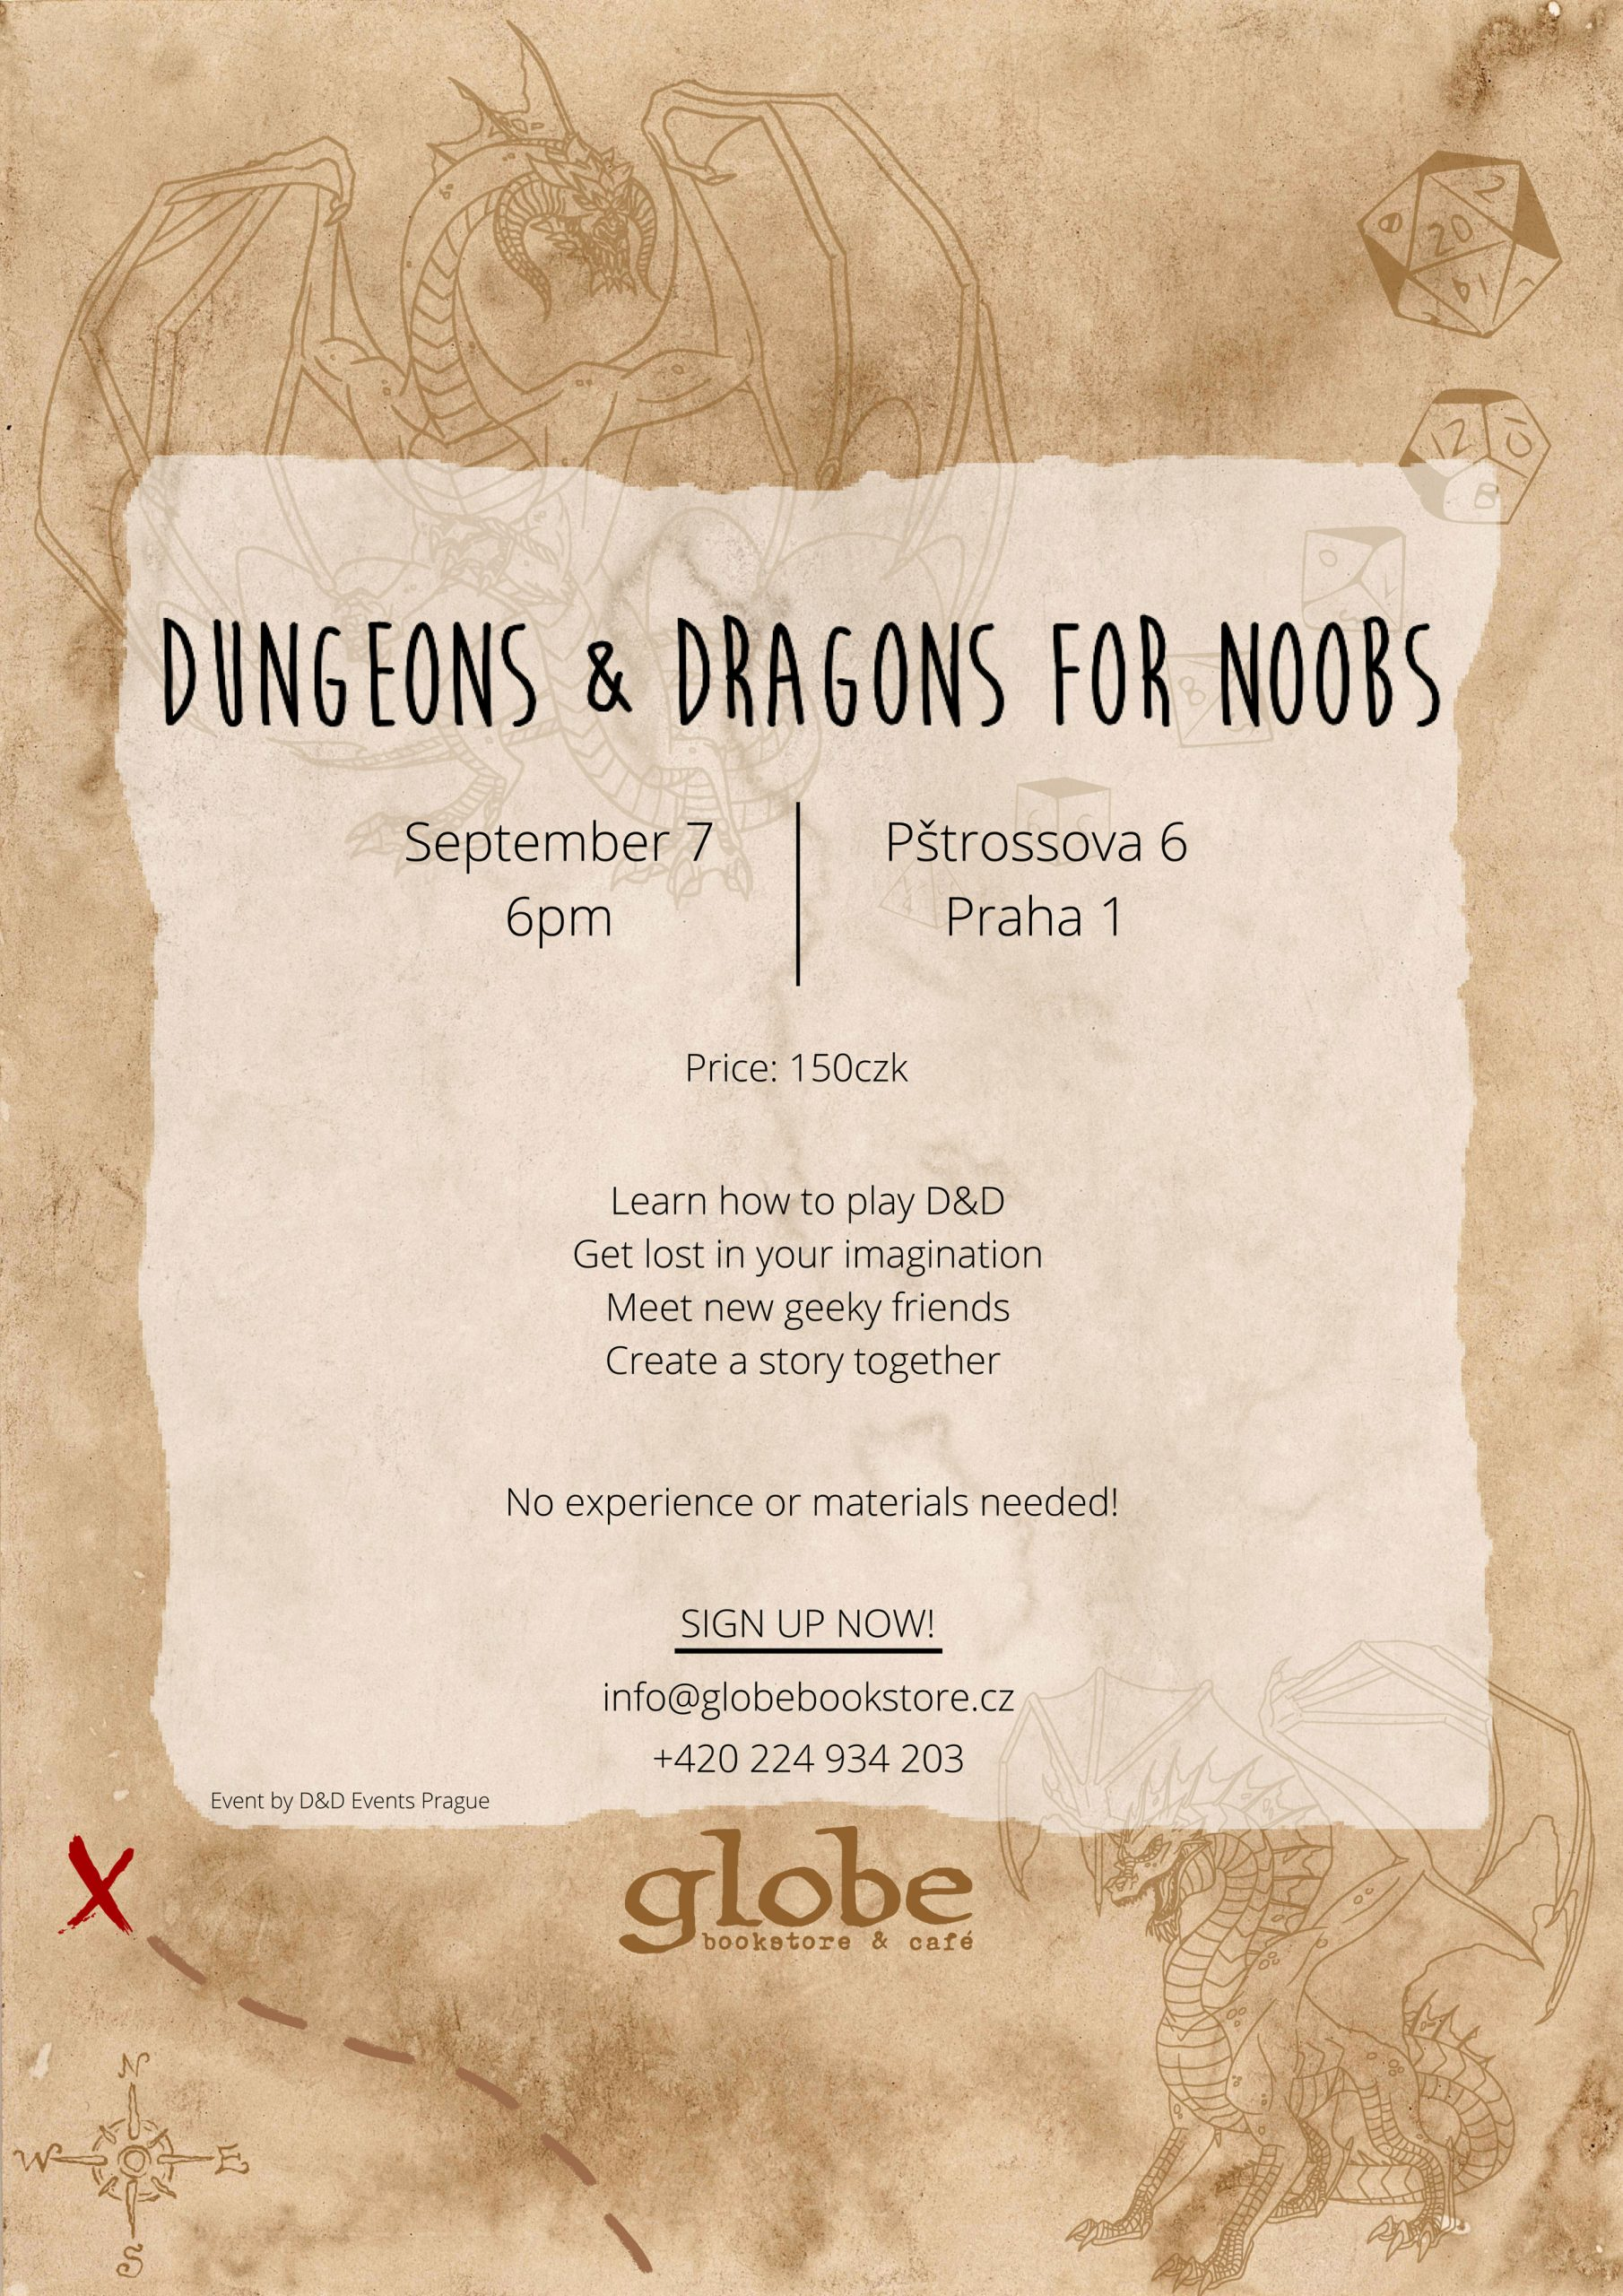 DnD for noobs poster